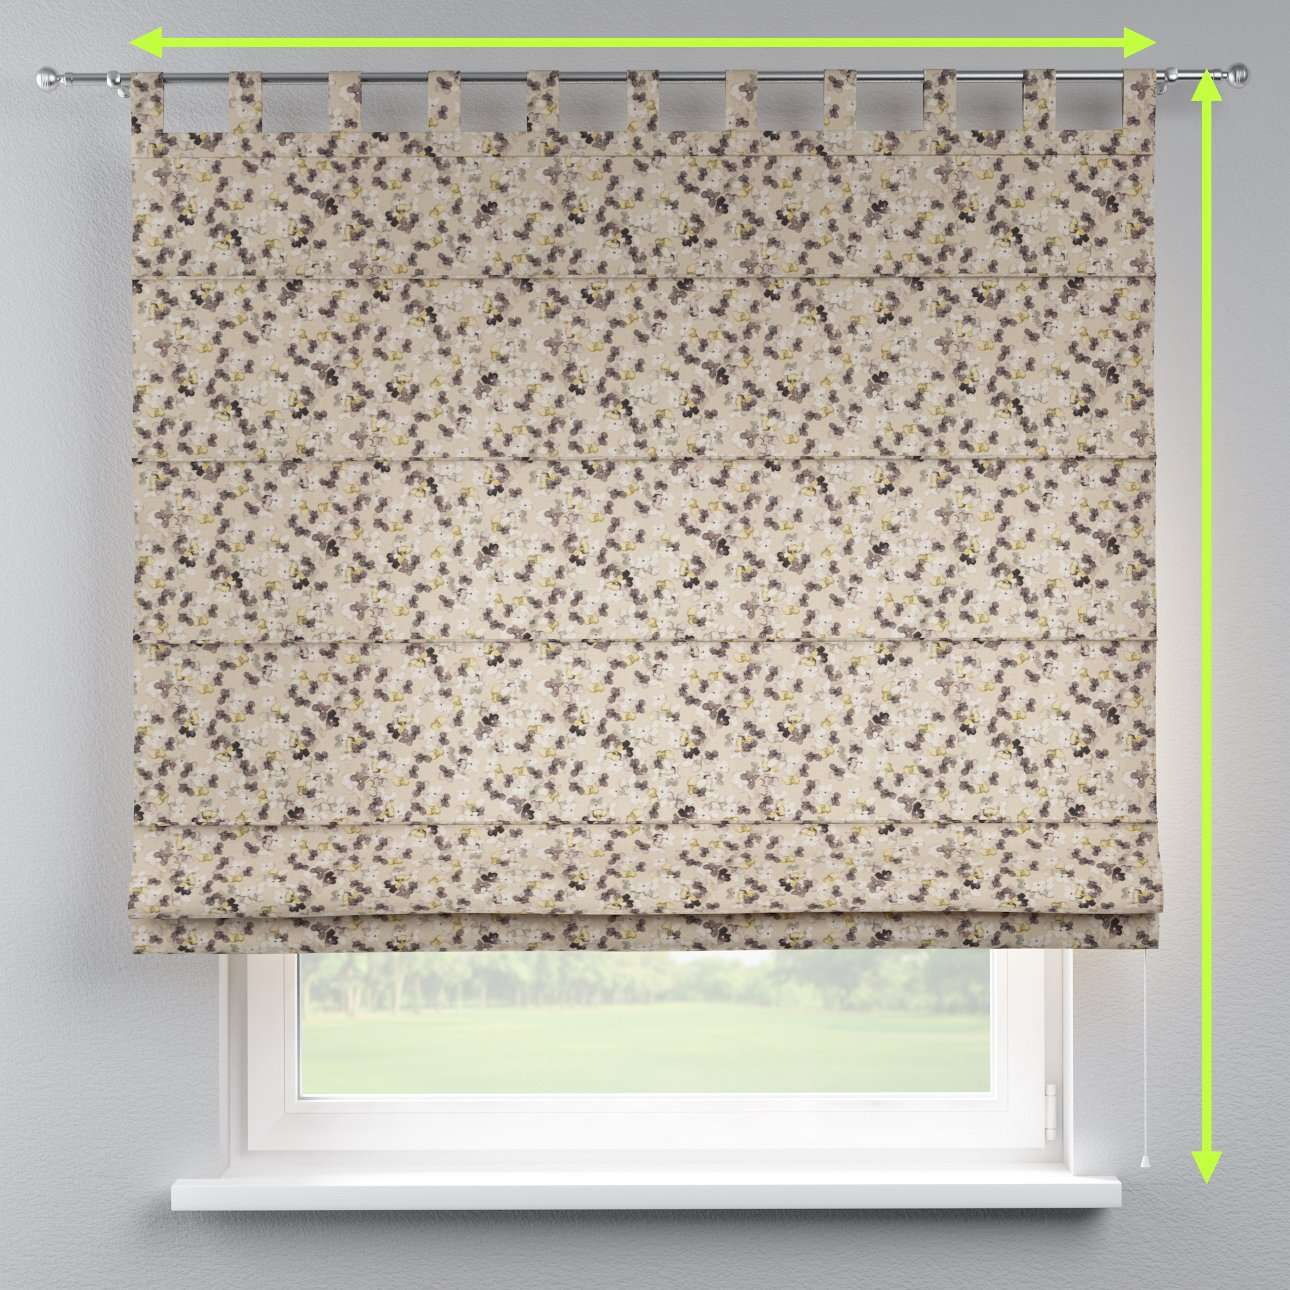 Verona tab top roman blind in collection Londres, fabric: 140-48